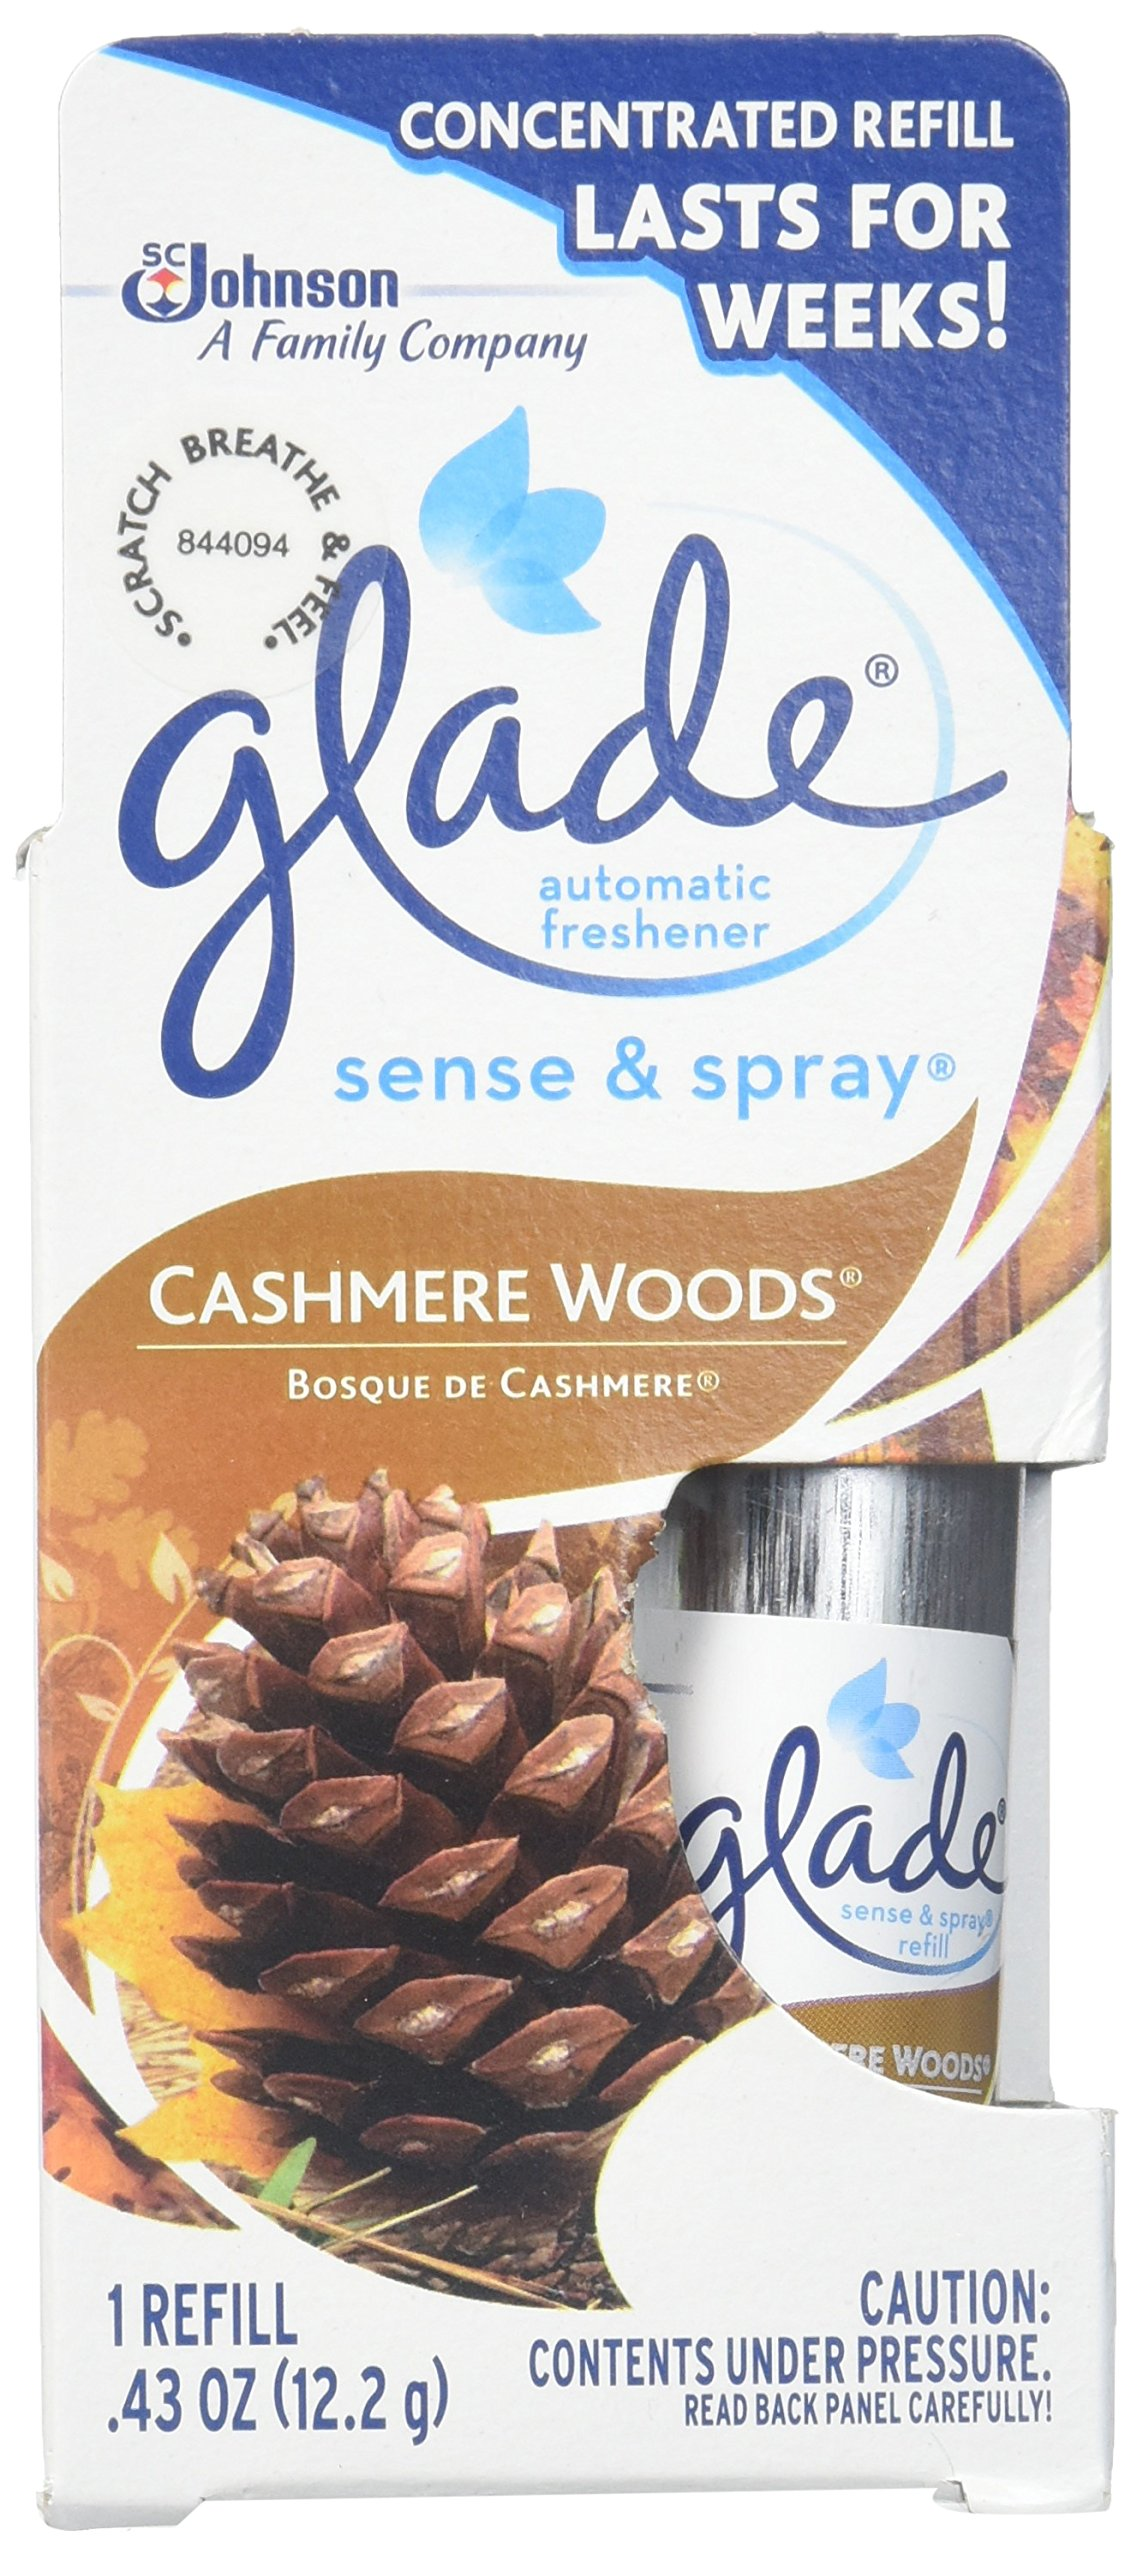 Glade Sense and Spray Concentrated Refill, Lasts For Weeks, Cashmere Woods, 0.43 Oz. Pack of 6 Refills. by Glade